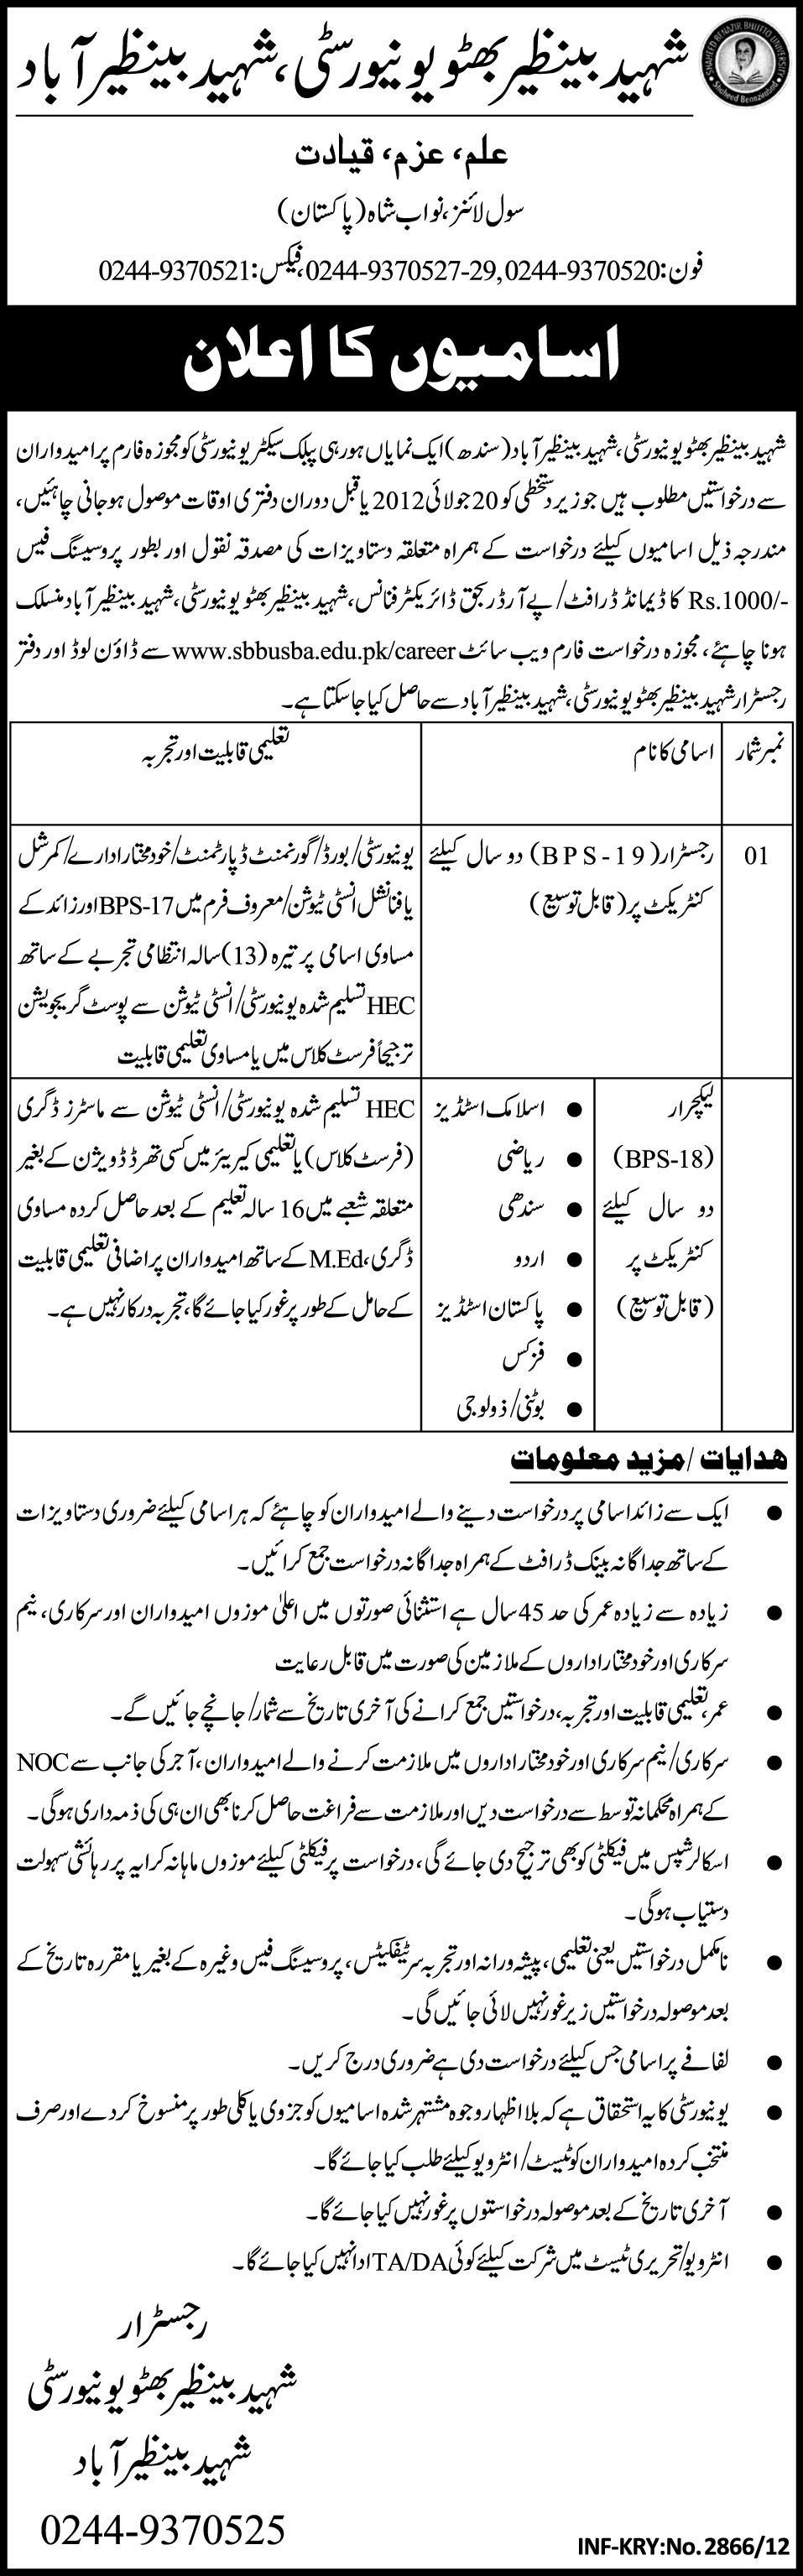 Lecturers and Registrar Required at Shaheed Benazir Bhutto University (Govt. job)